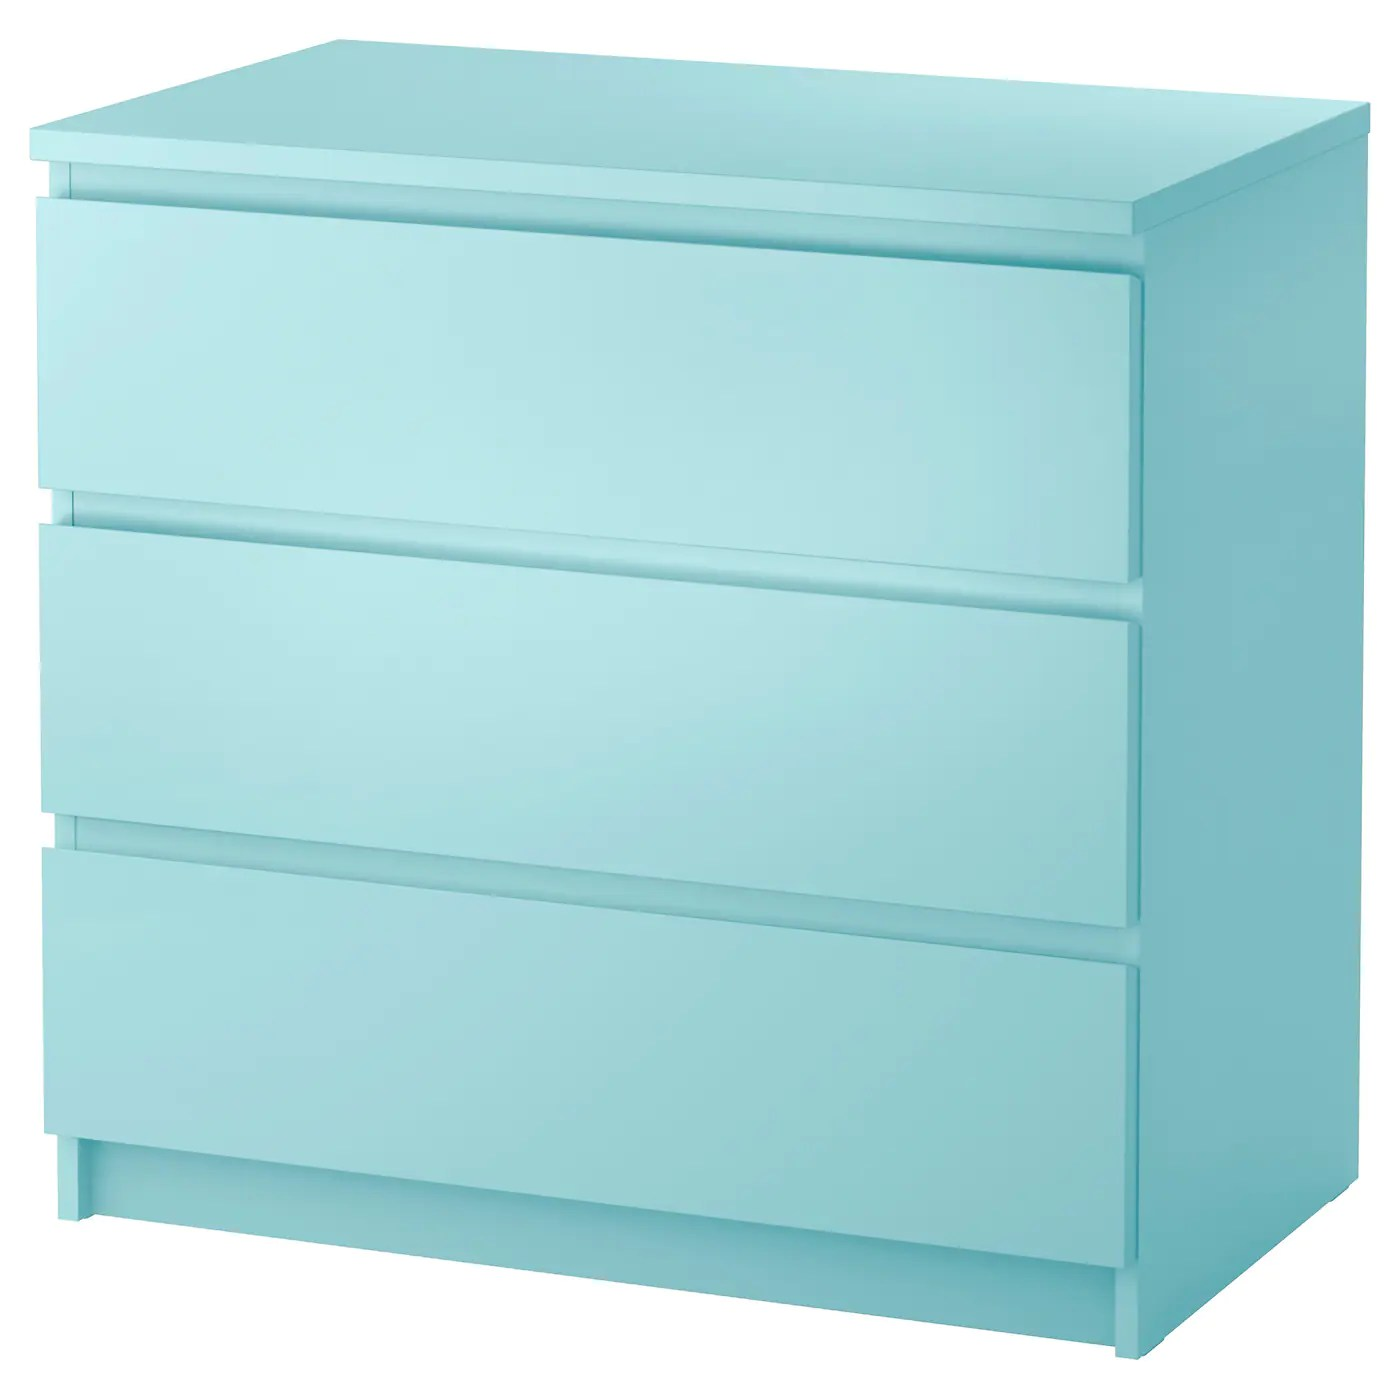 Schrank 1m Hoch Malm Chest Of 3 Drawers Light Turquoise 80x78 Cm Ikea